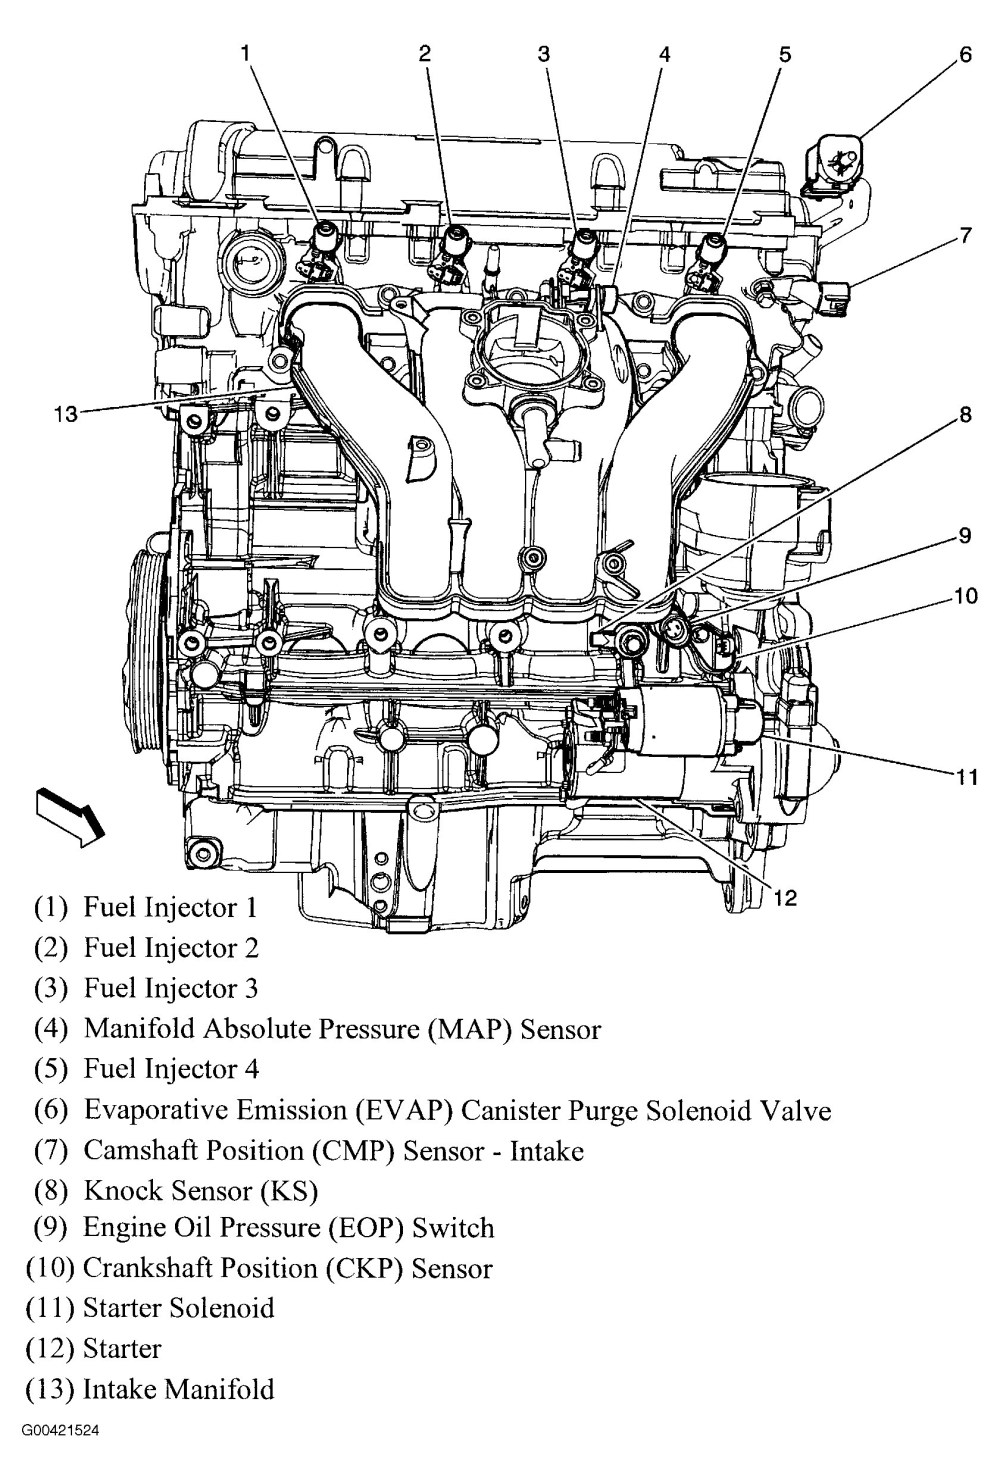 medium resolution of gm 3 4l v6 engine diagram wiring diagram hub 454 mercruiser engine diagram 4 3 v6 cylinder engine diagram